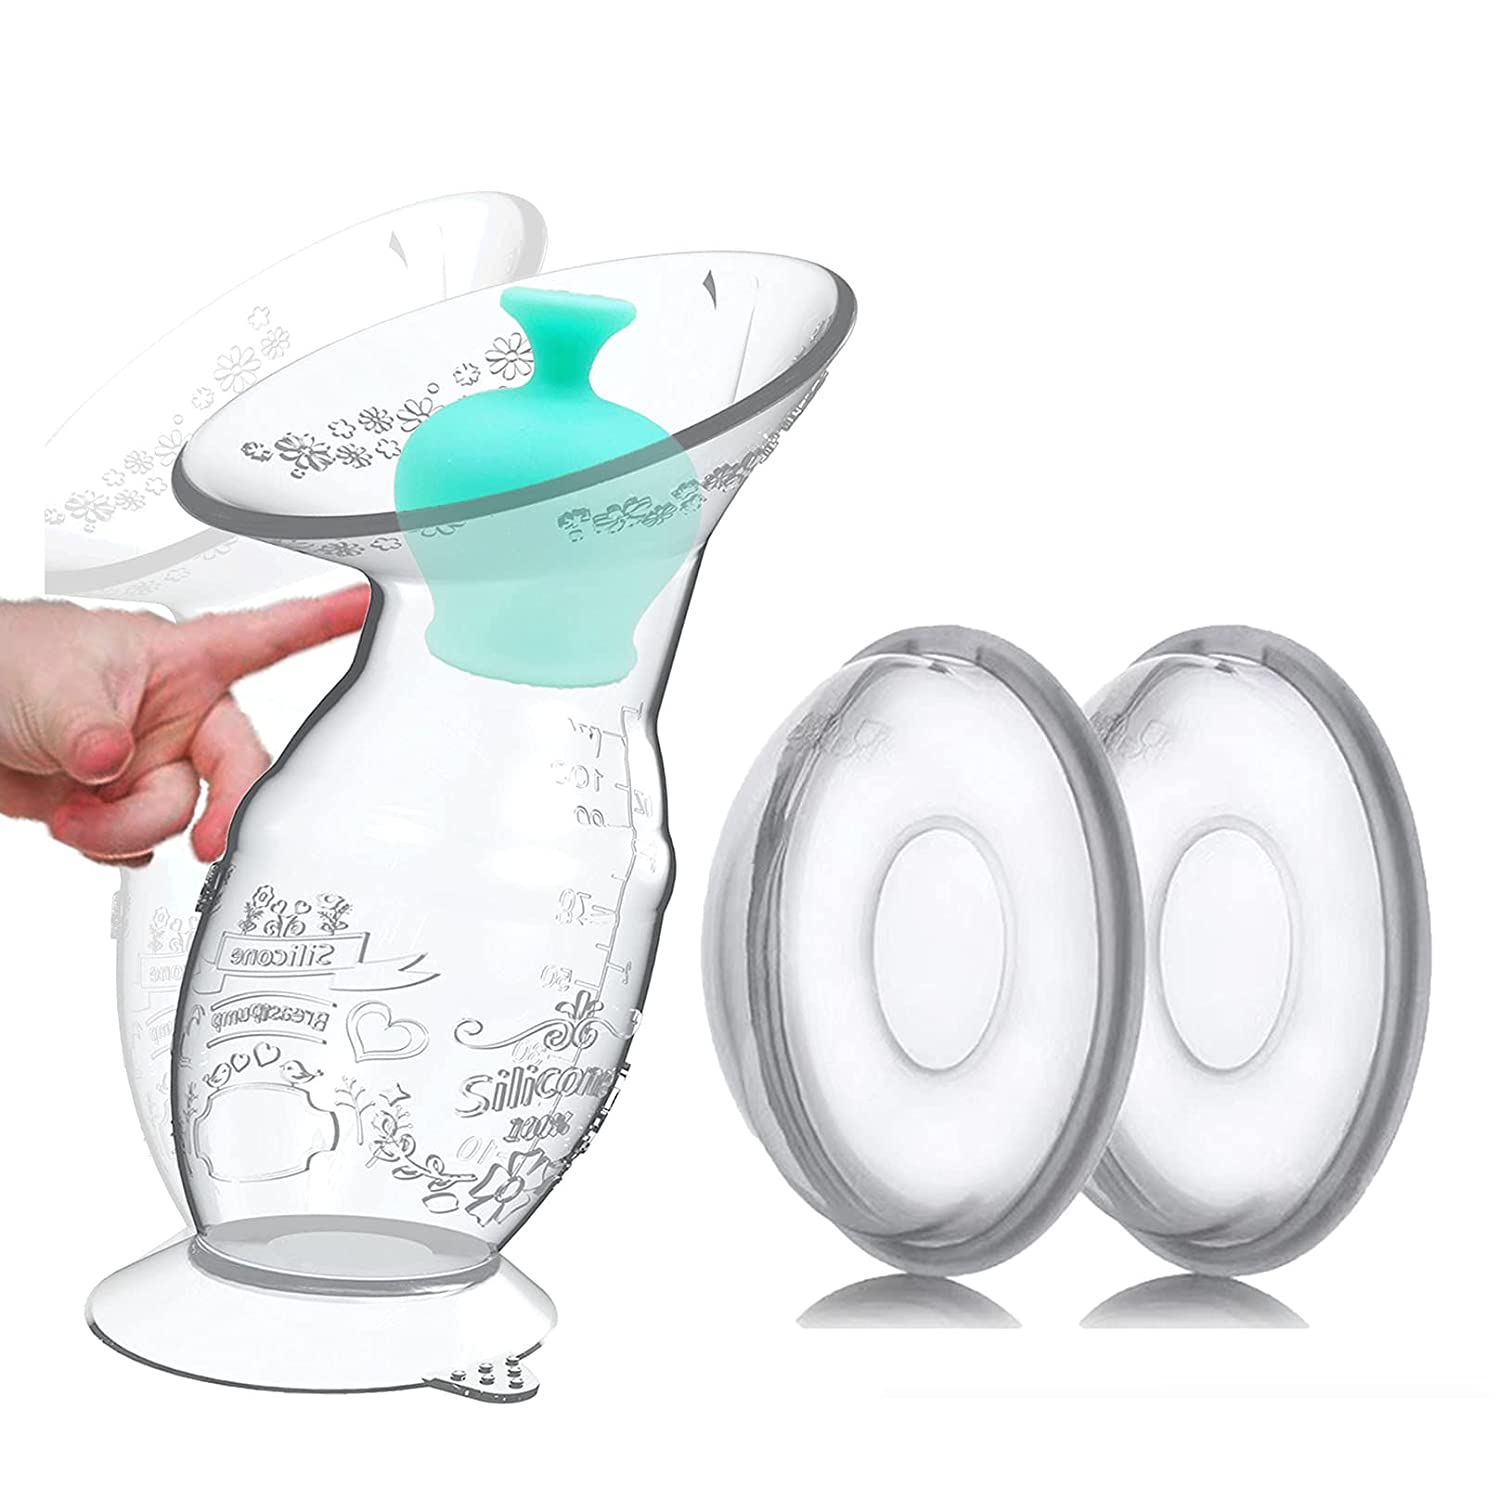 ChubbyZebra Silicone Breast Pump, Breast Shells, Nursing Cups, Breast Milk Collector, Breast Milk Catcher, Breastfeeding Collection Cups, Manual Breast Pump, Stopper, Spill Proof, Food Grade, BPA Free